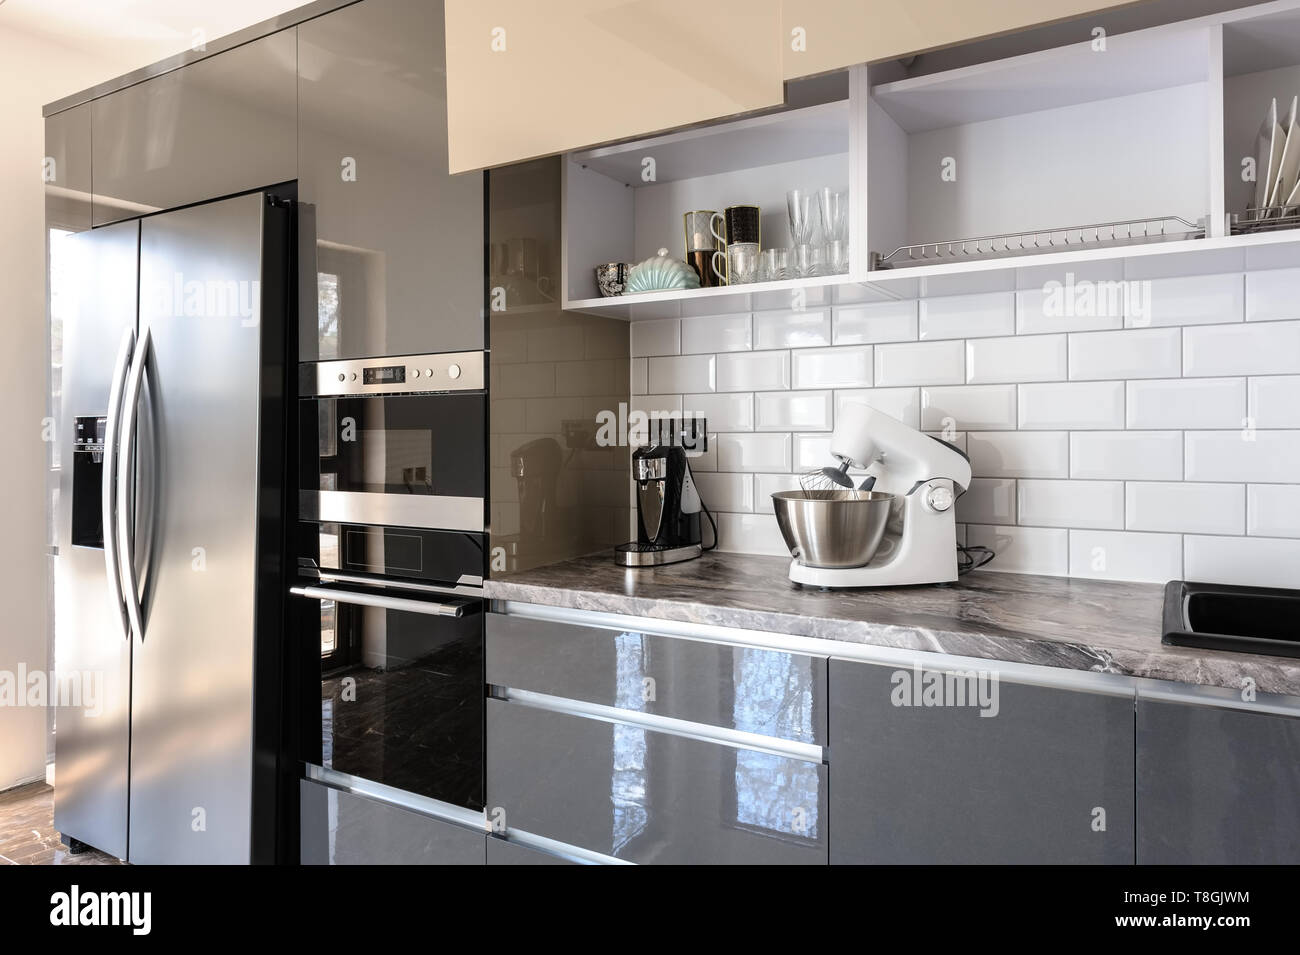 Spacious Luxury Well Designed Modern Grey Beige And White Kitchen Door Of Electric Oven Are Open Stock Photo Alamy